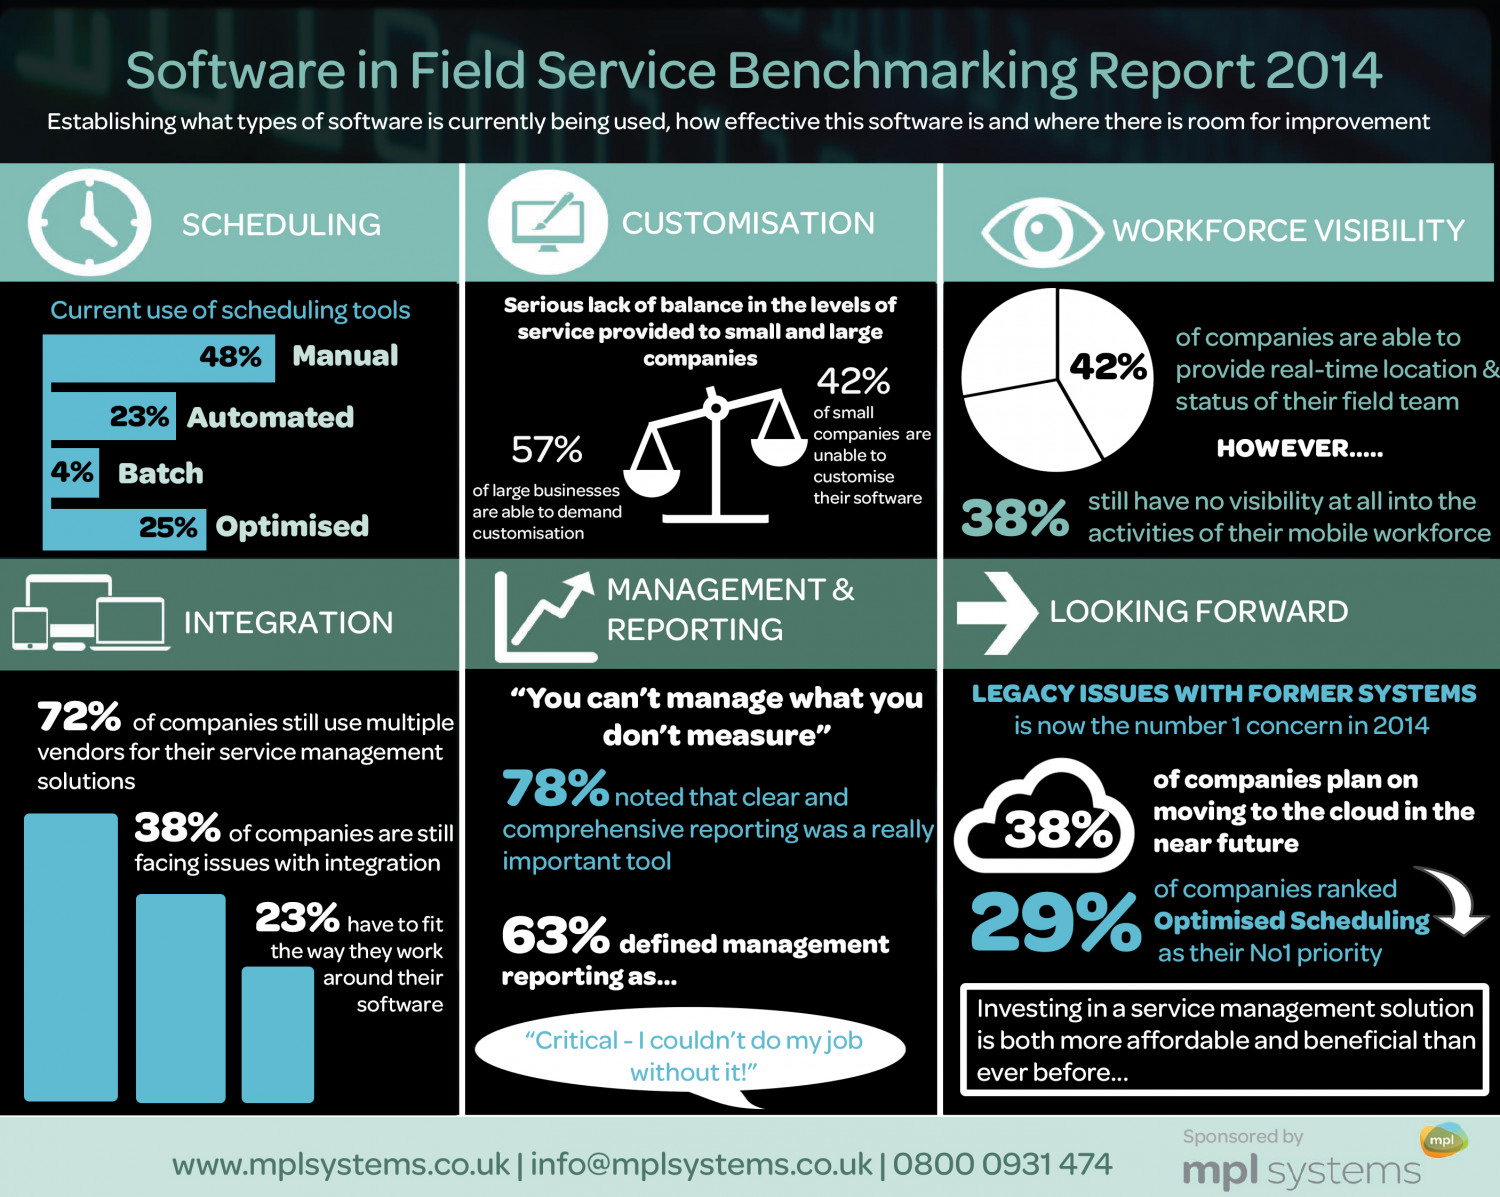 Software in Field Service Benchmarking Report 2014 Infographic